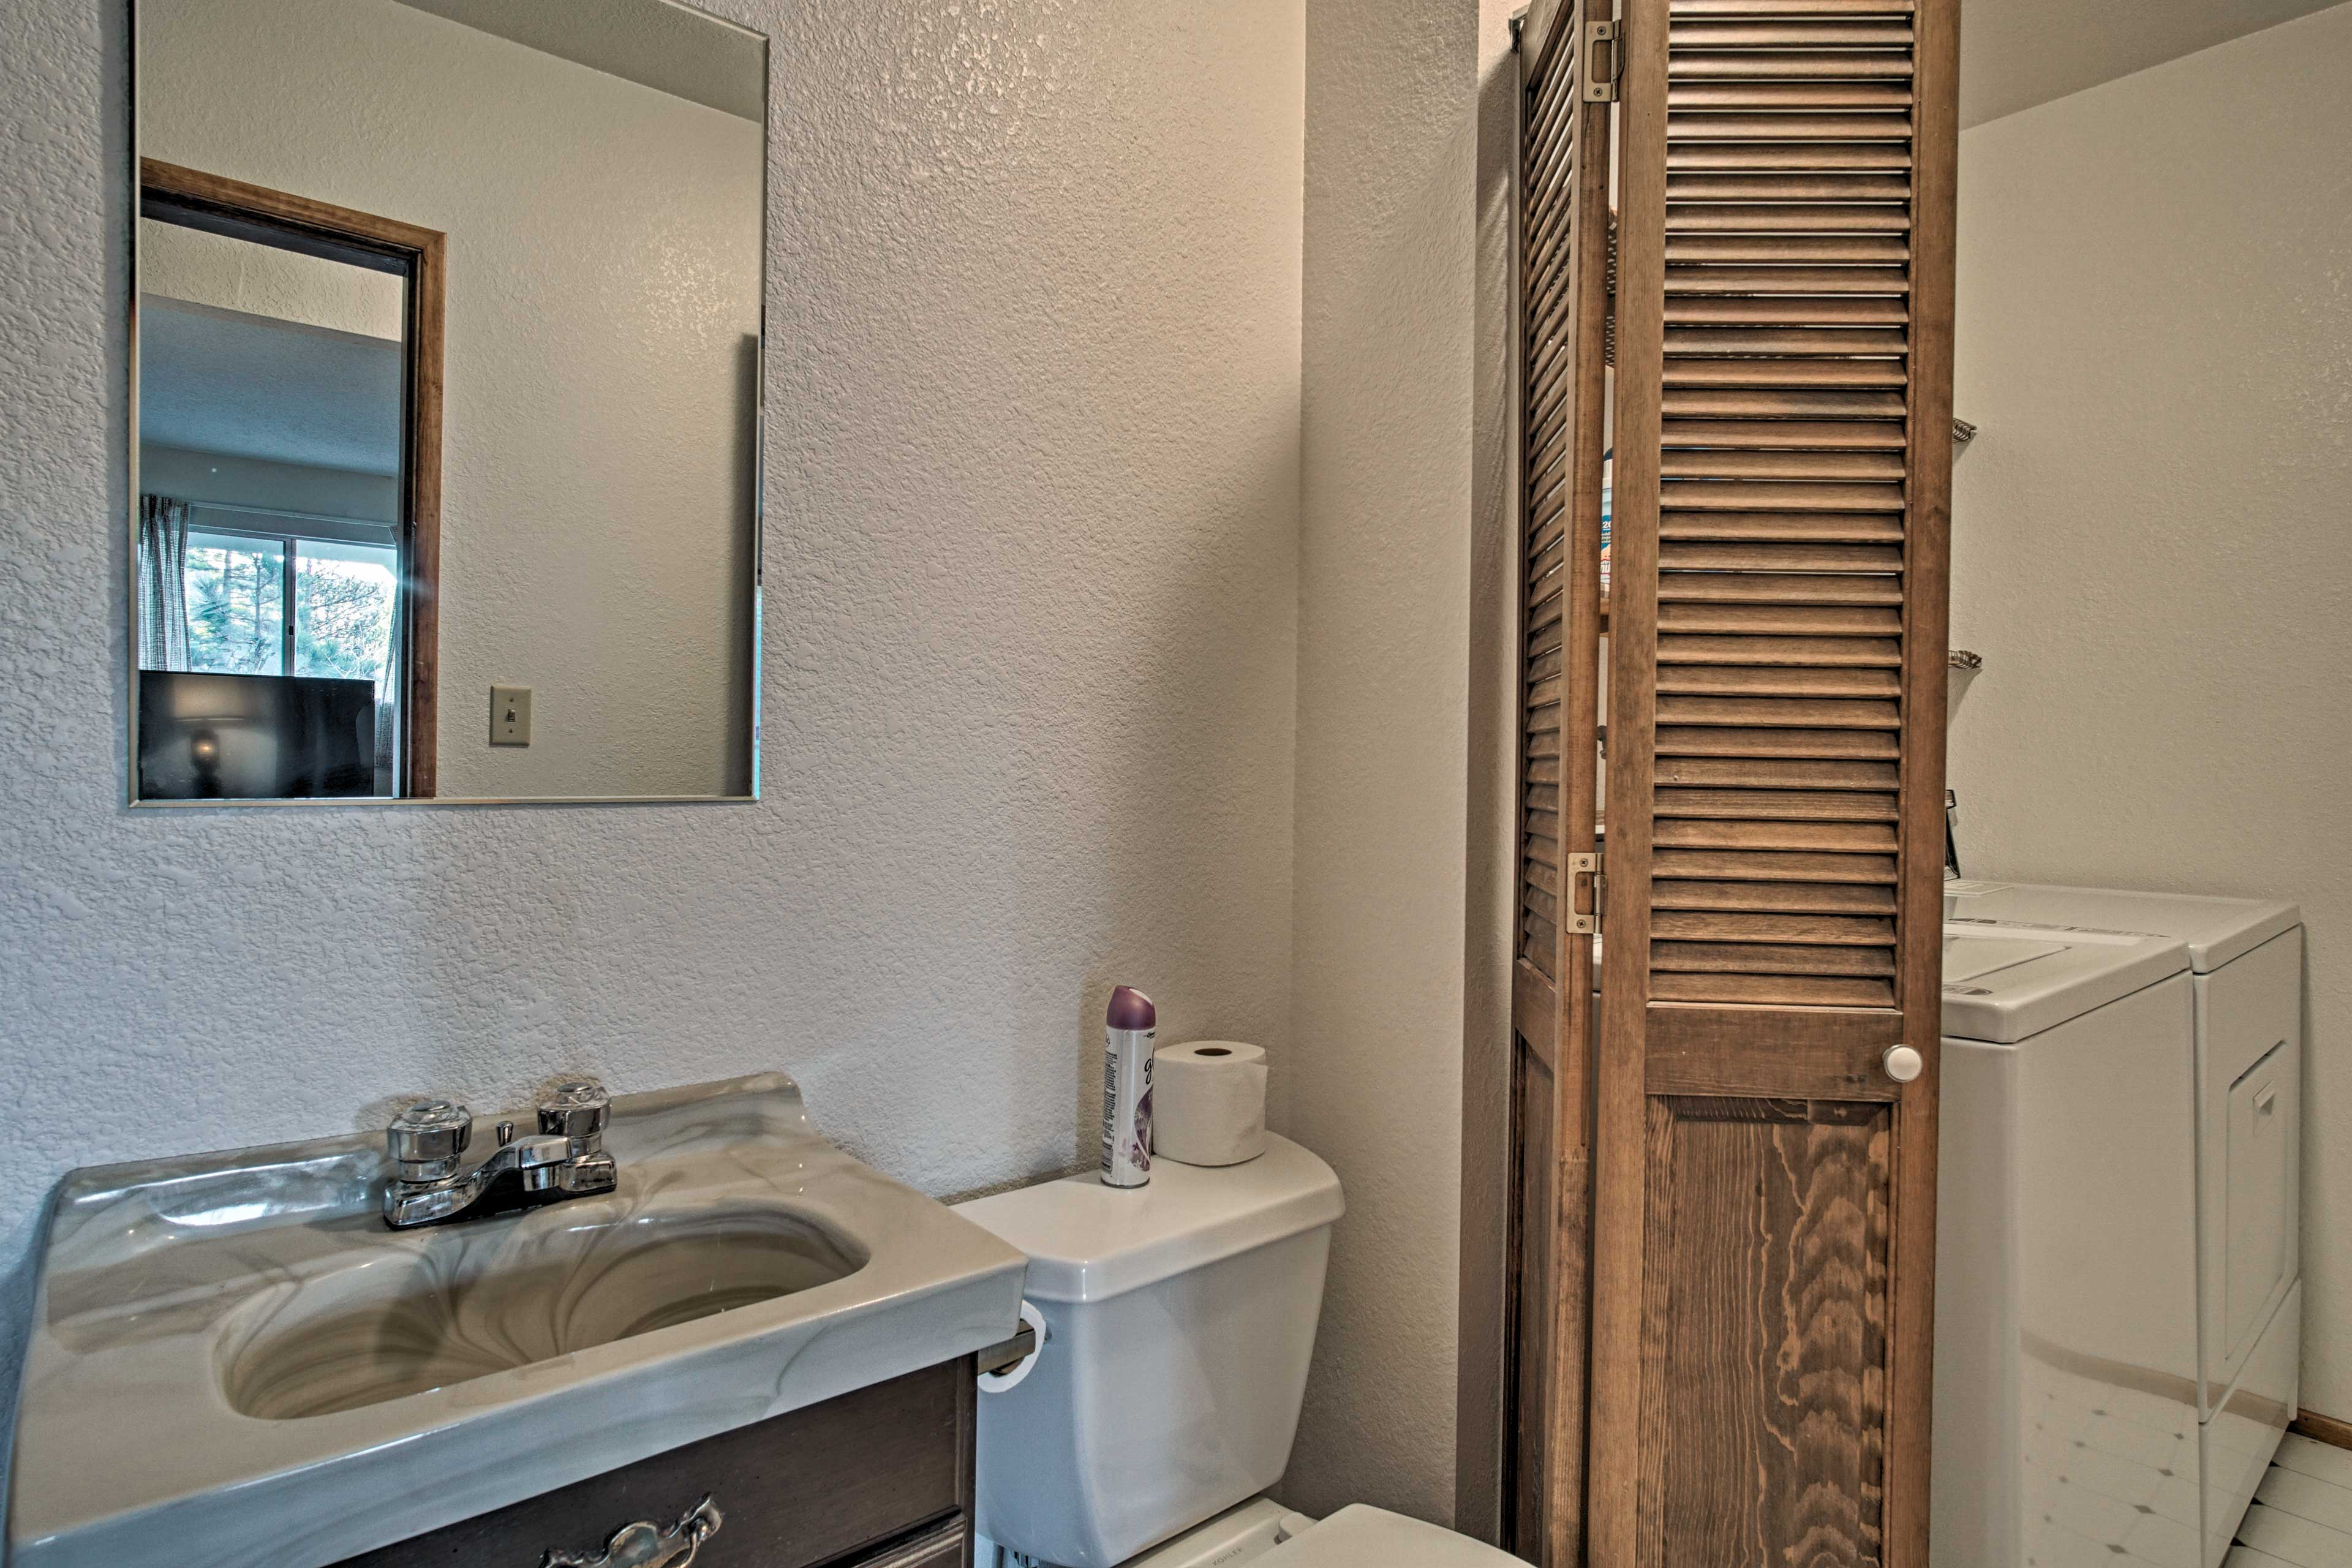 You'll find 2.5 bathrooms in the home.